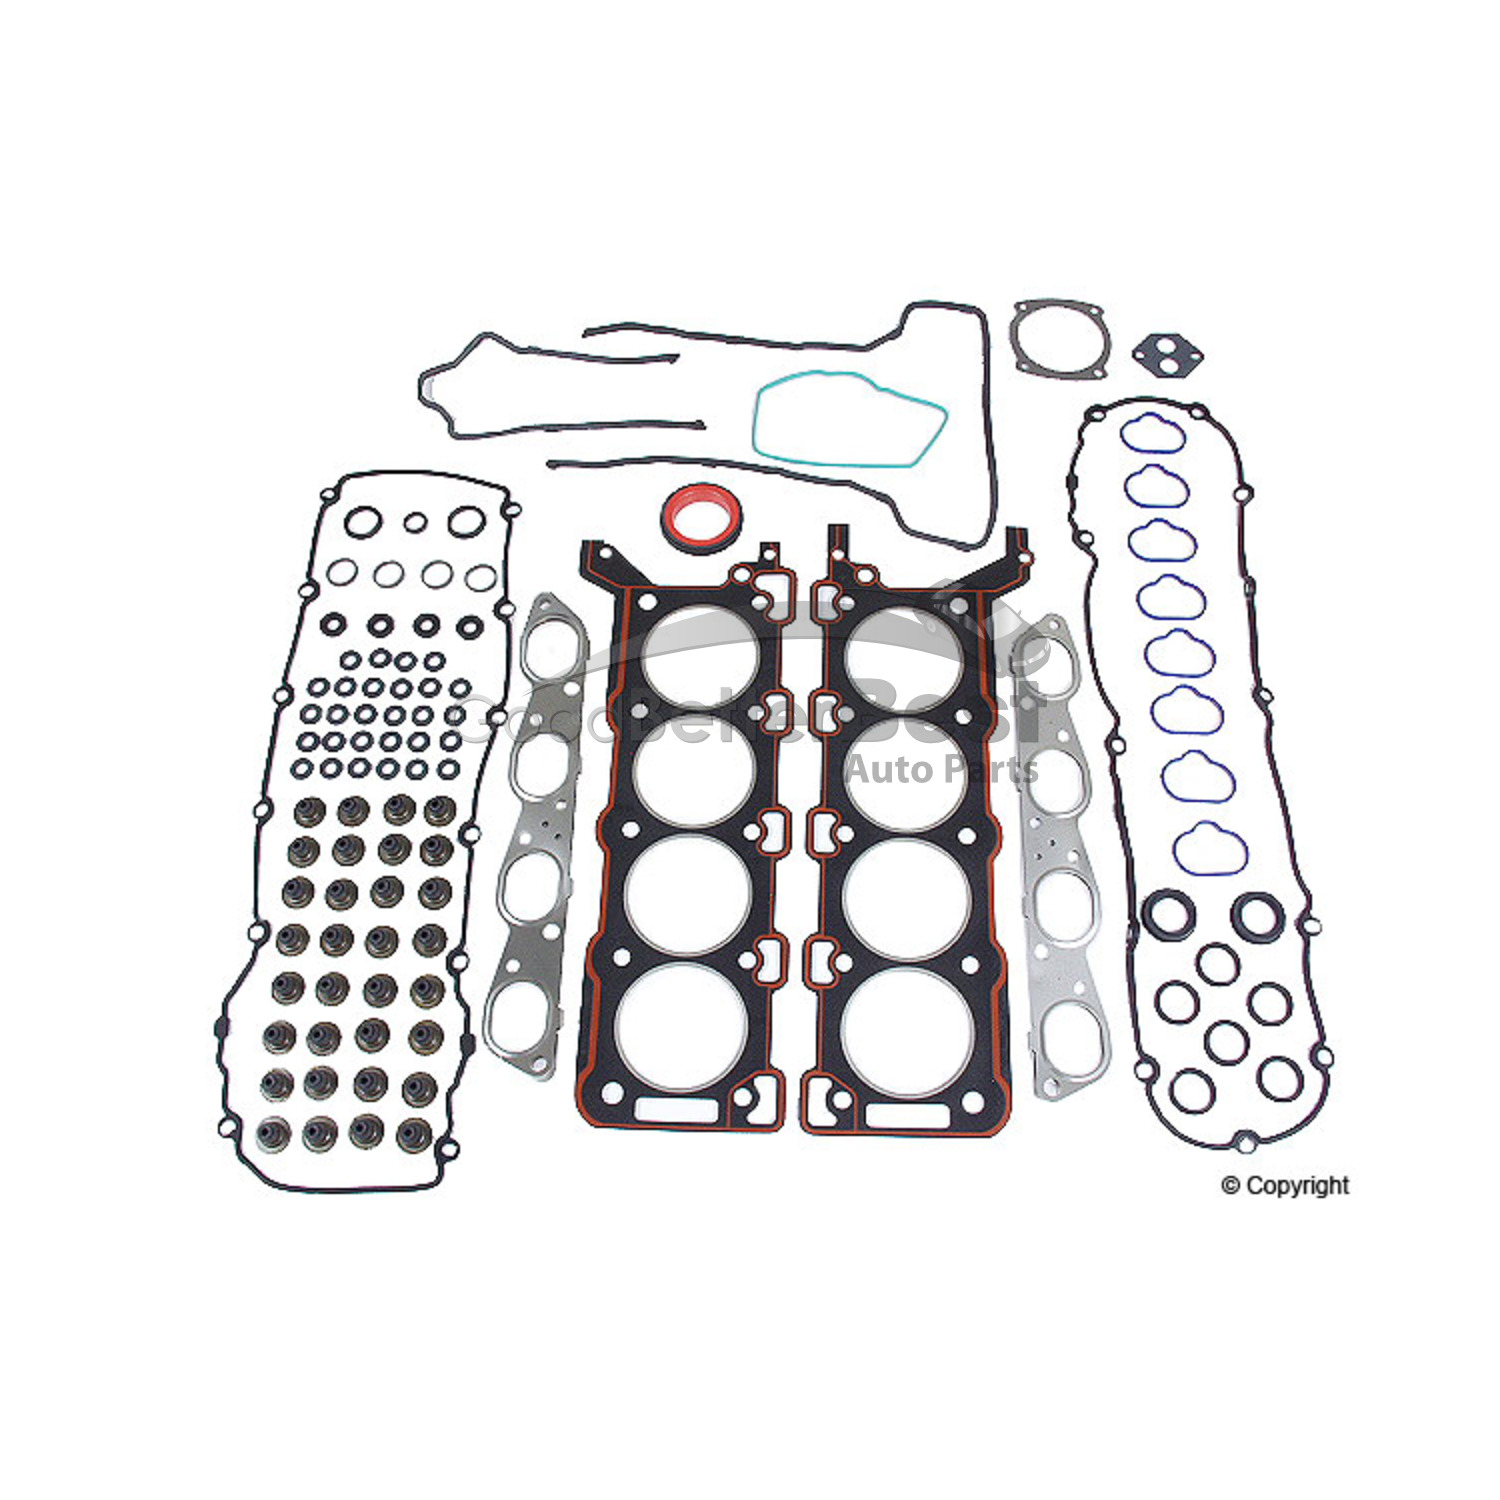 New Eurospare Engine Cylinder Head Gasket Set Jlm X